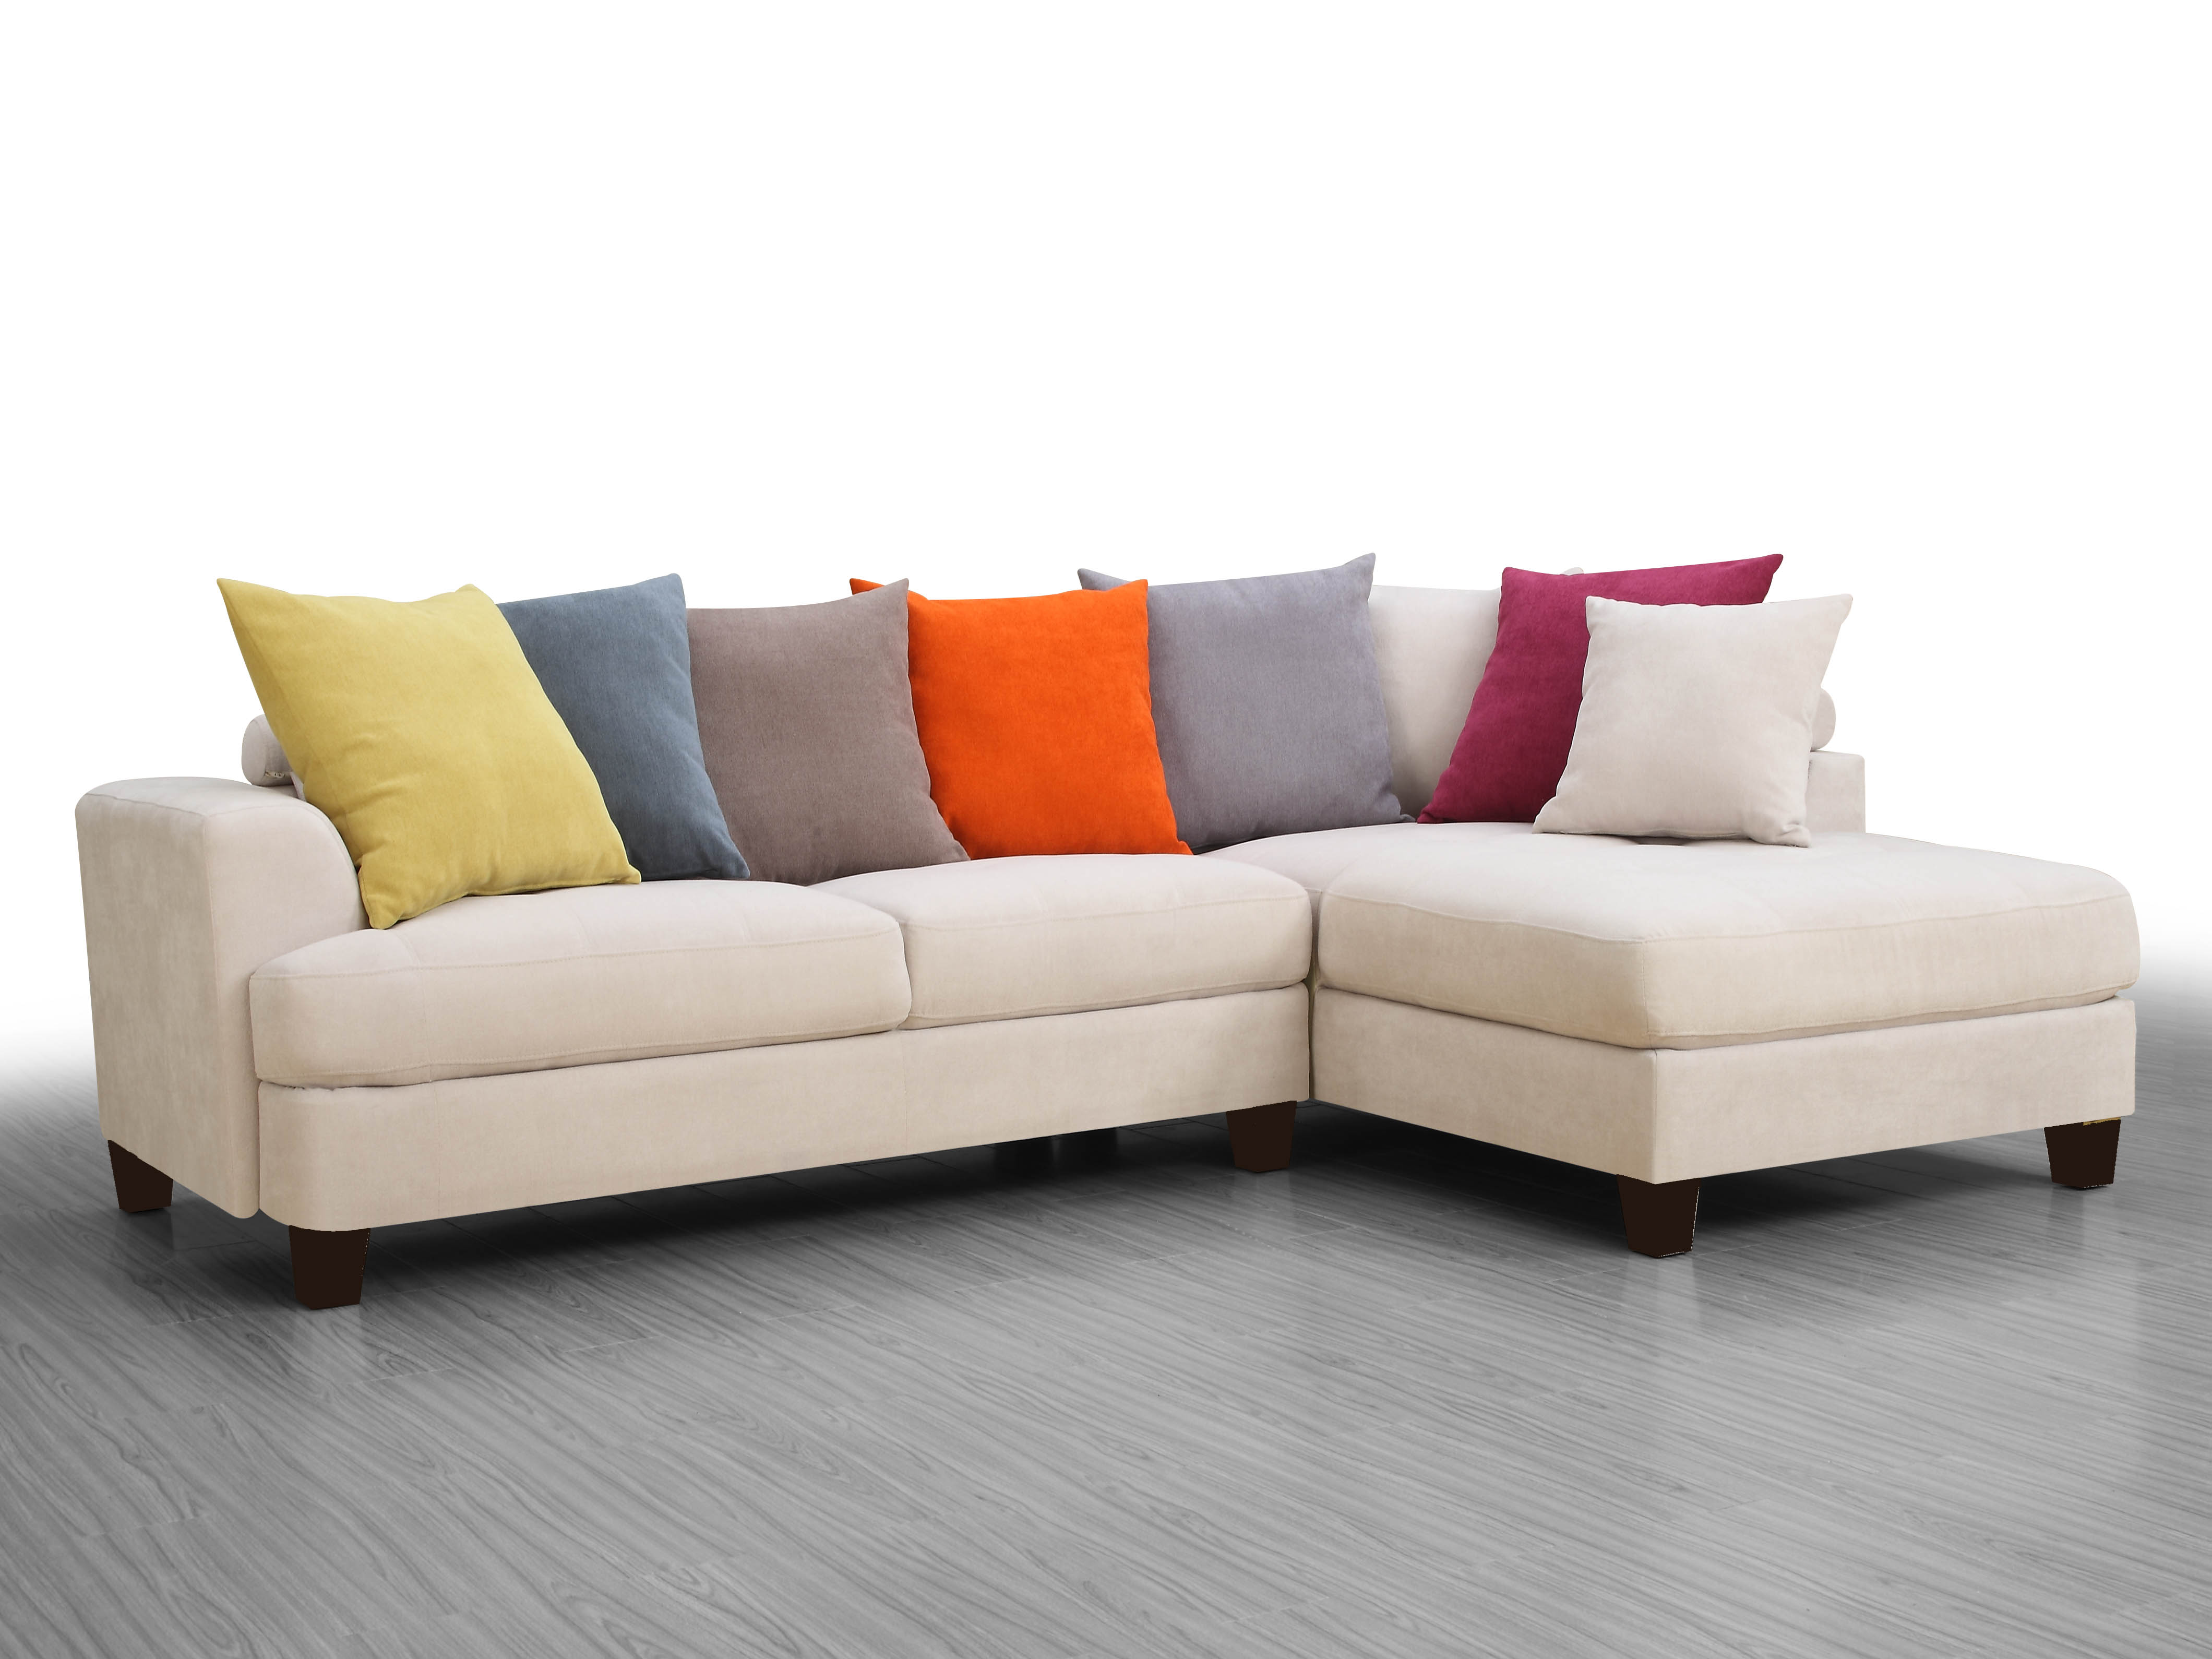 Rana Furniture Living Room Clearance